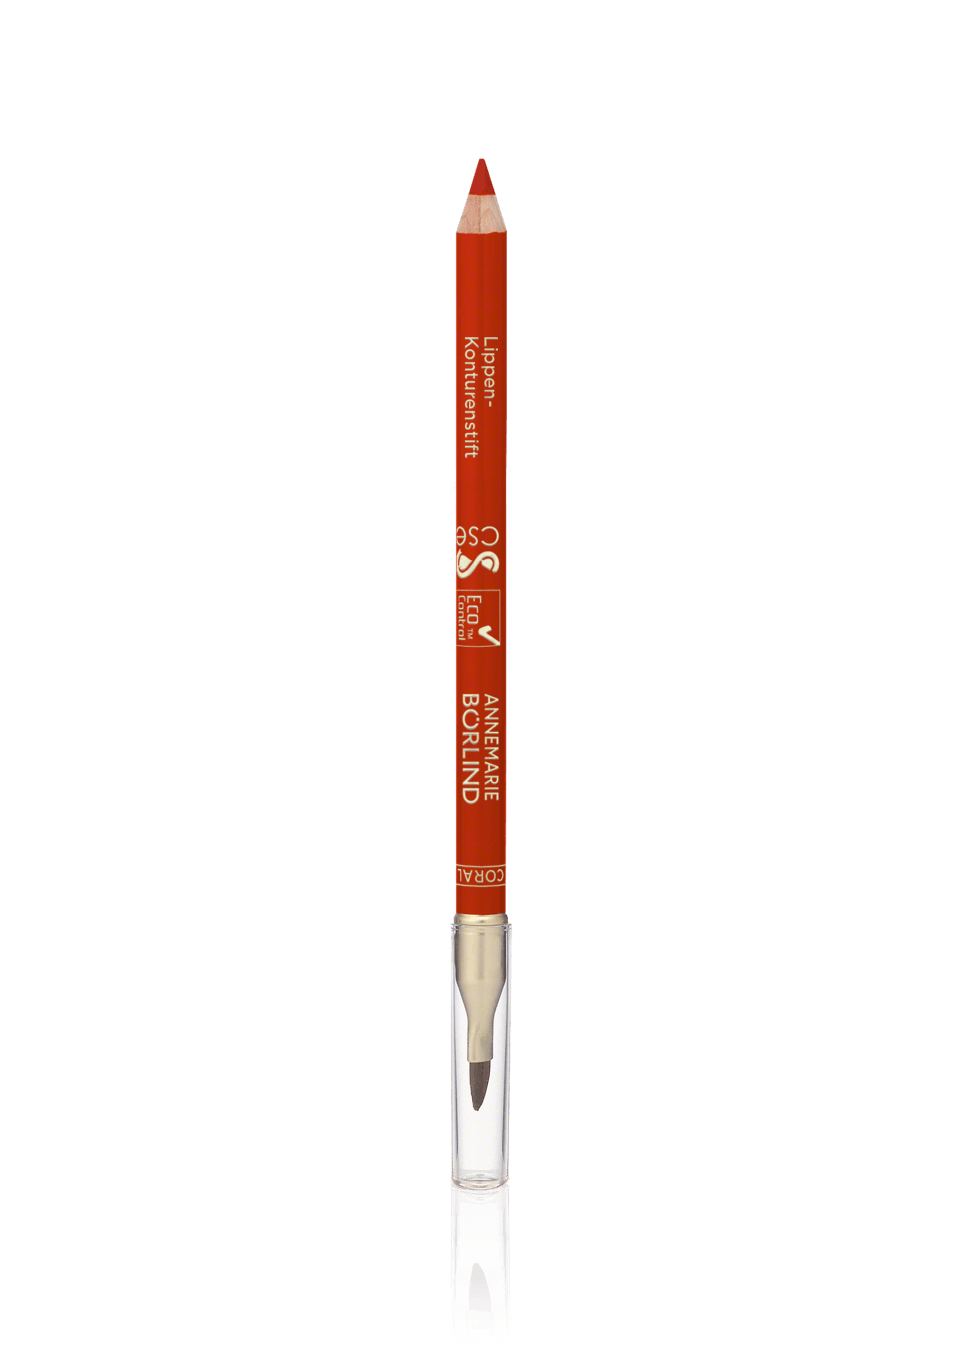 Personal Care - Annemarie Borlind Lip Liner - Coral, 1g